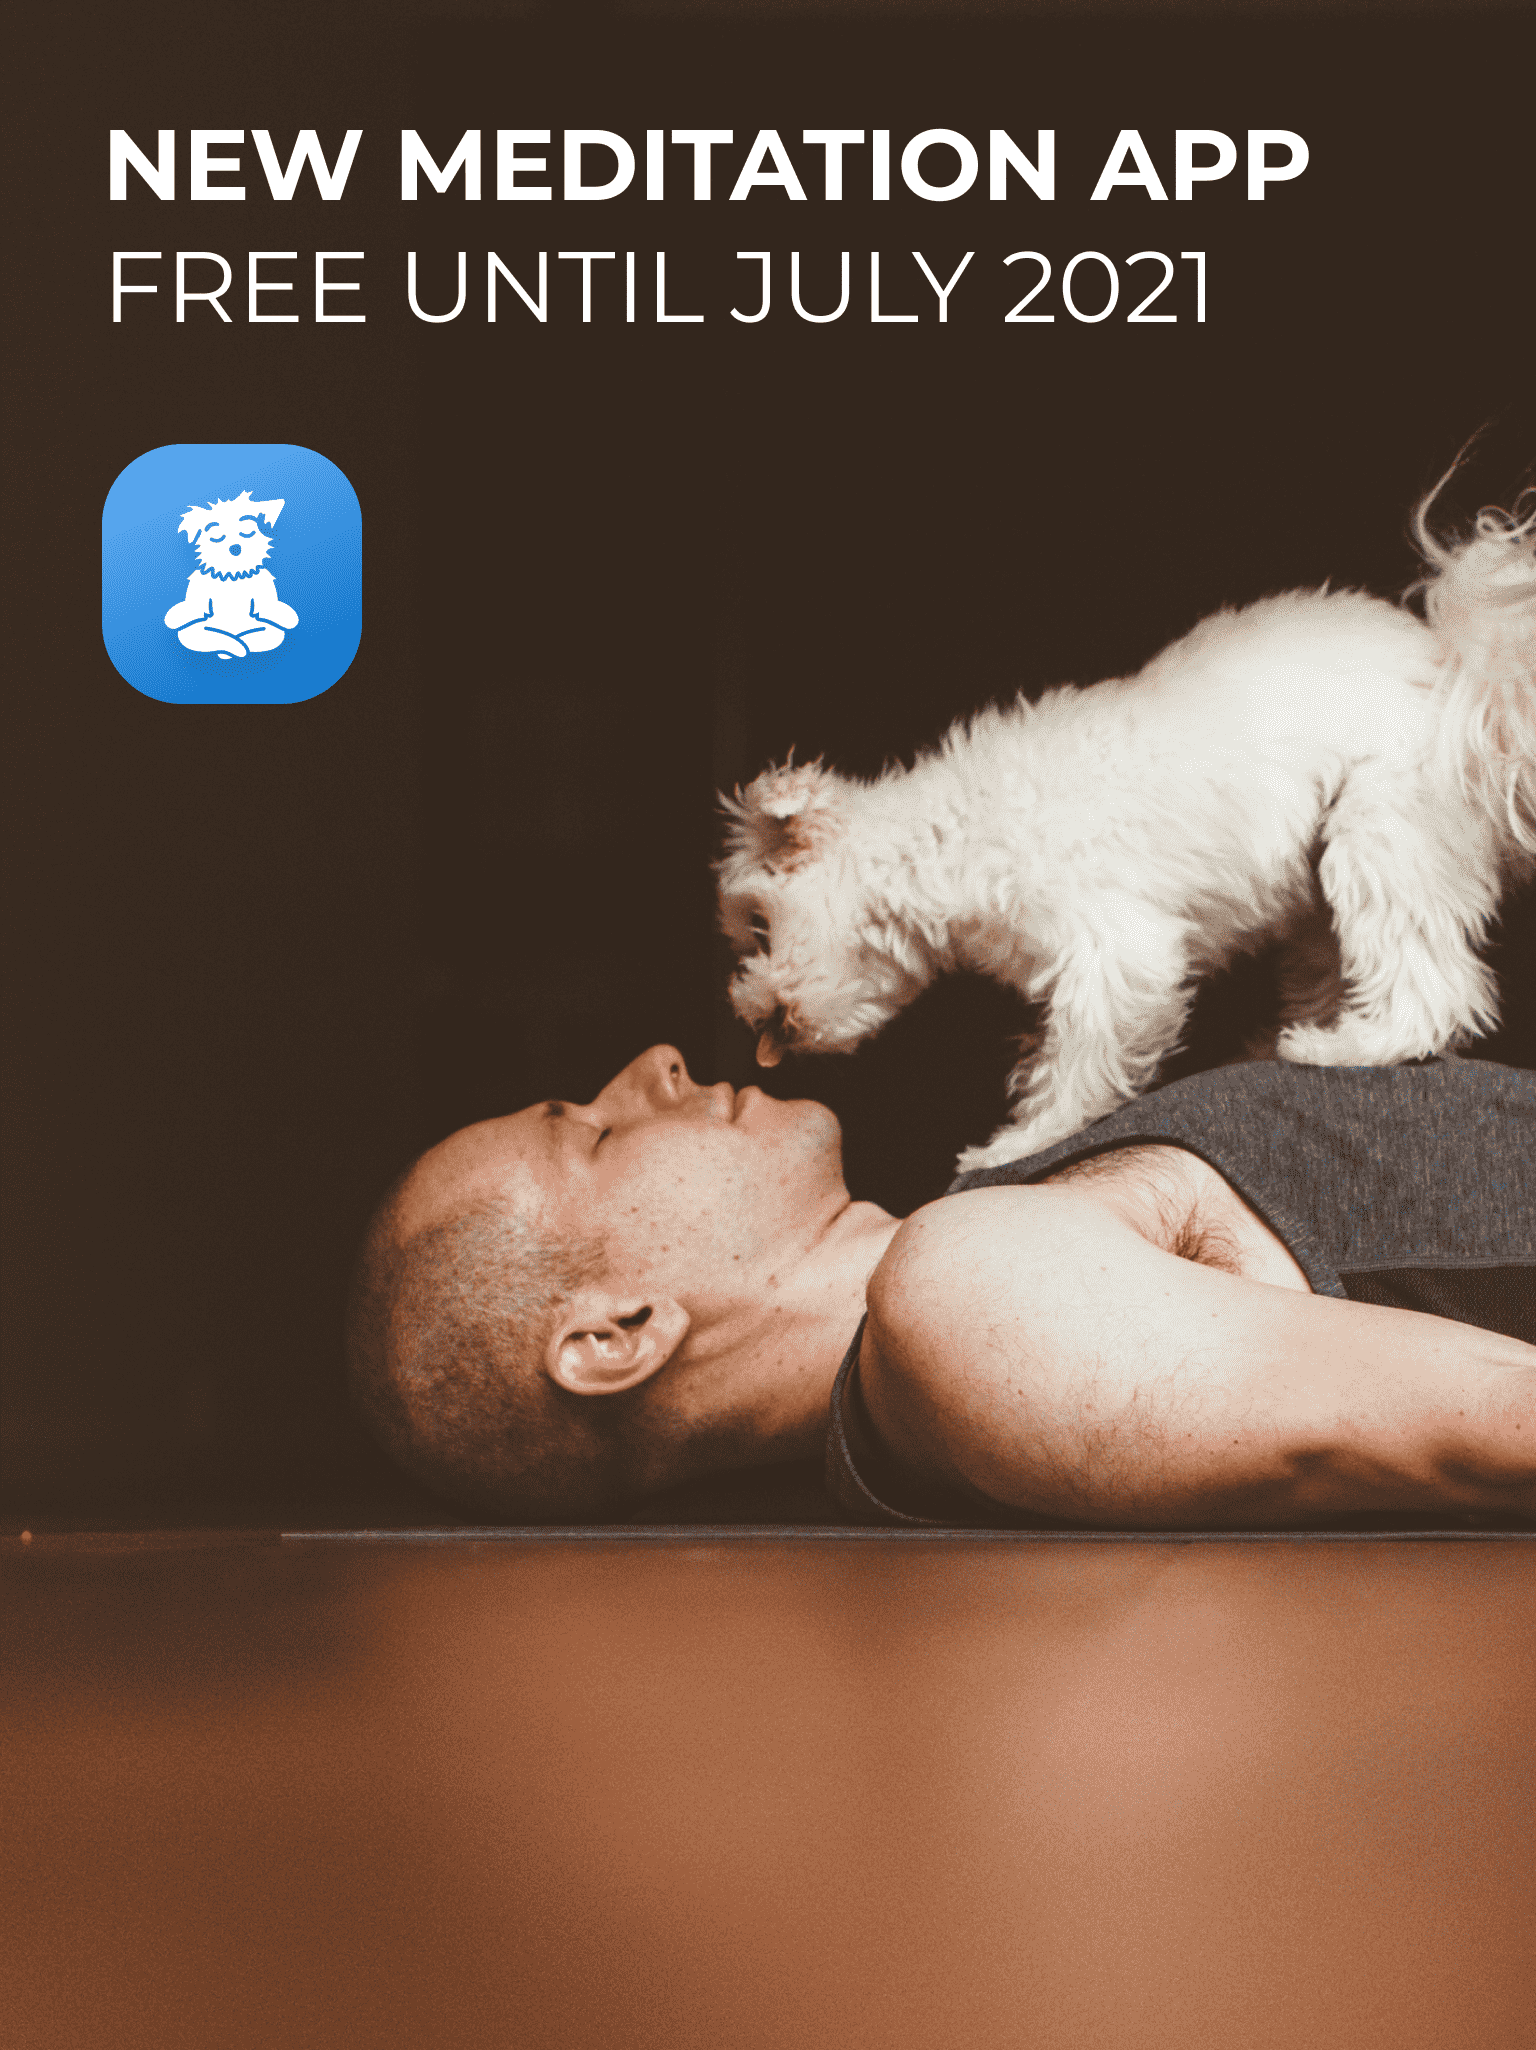 The #1 Rated Yoga App, Down Dog, Releases Free Meditation App.